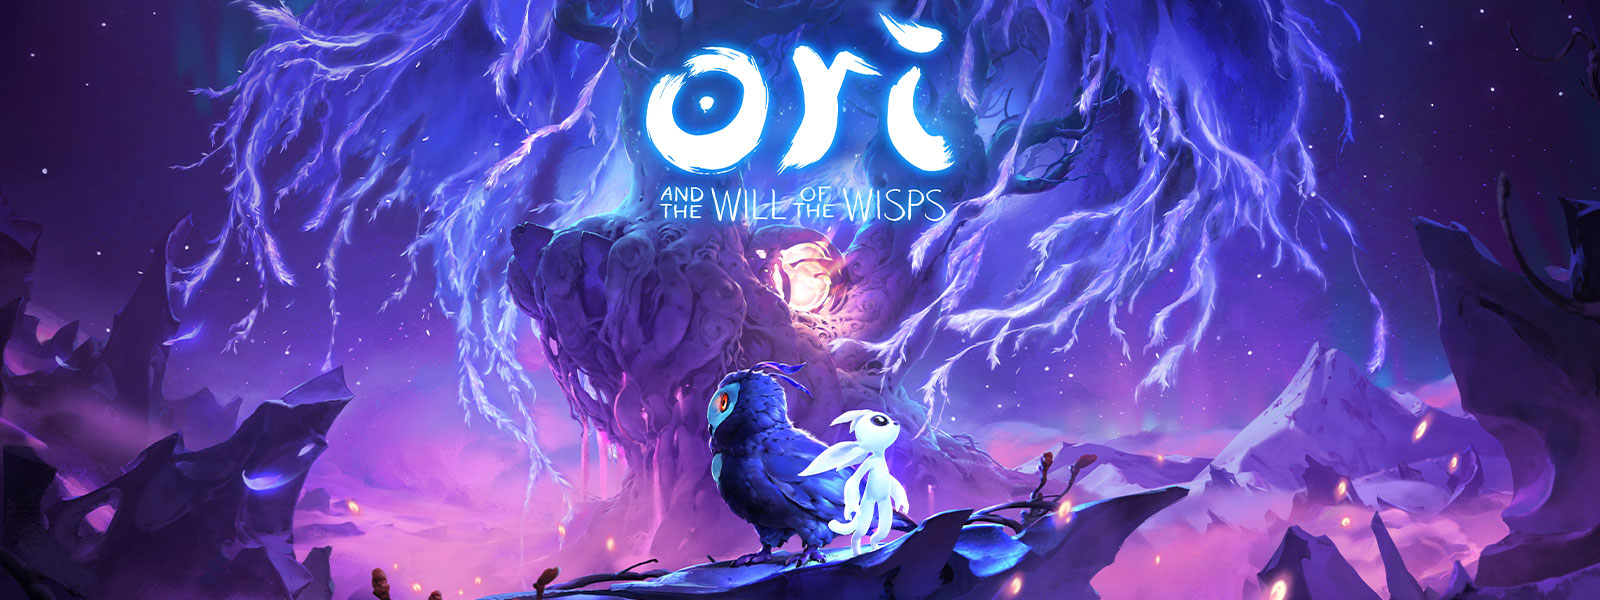 Ori and the Will of the Wisps, Ori stands next to an Owl in front of a fantastical purple tree